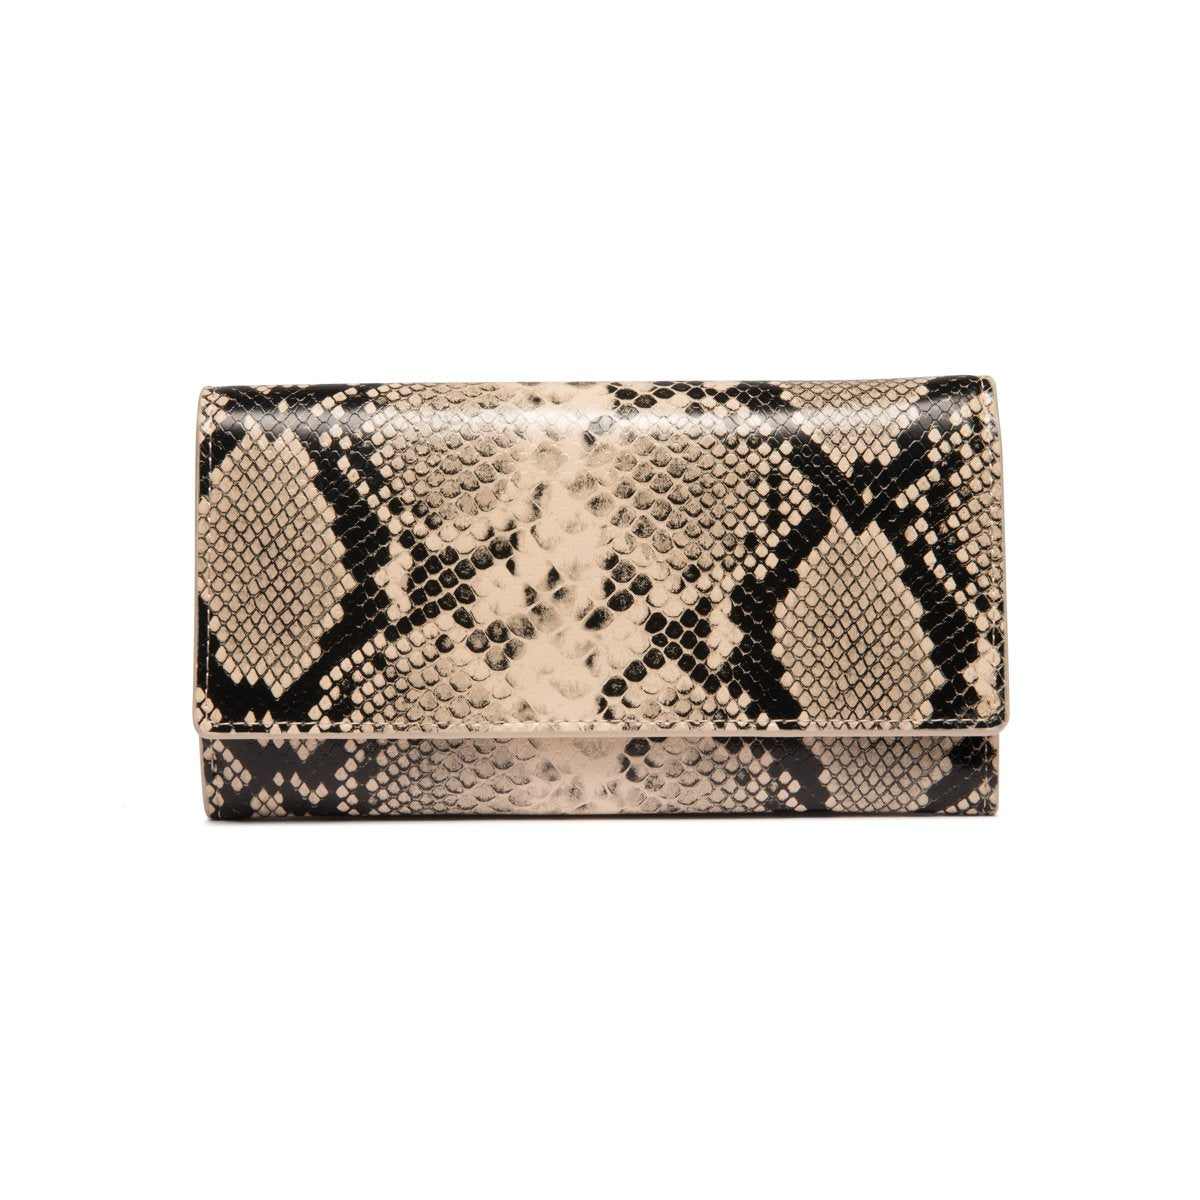 Cream & Black Snakeskin Bella Wallet